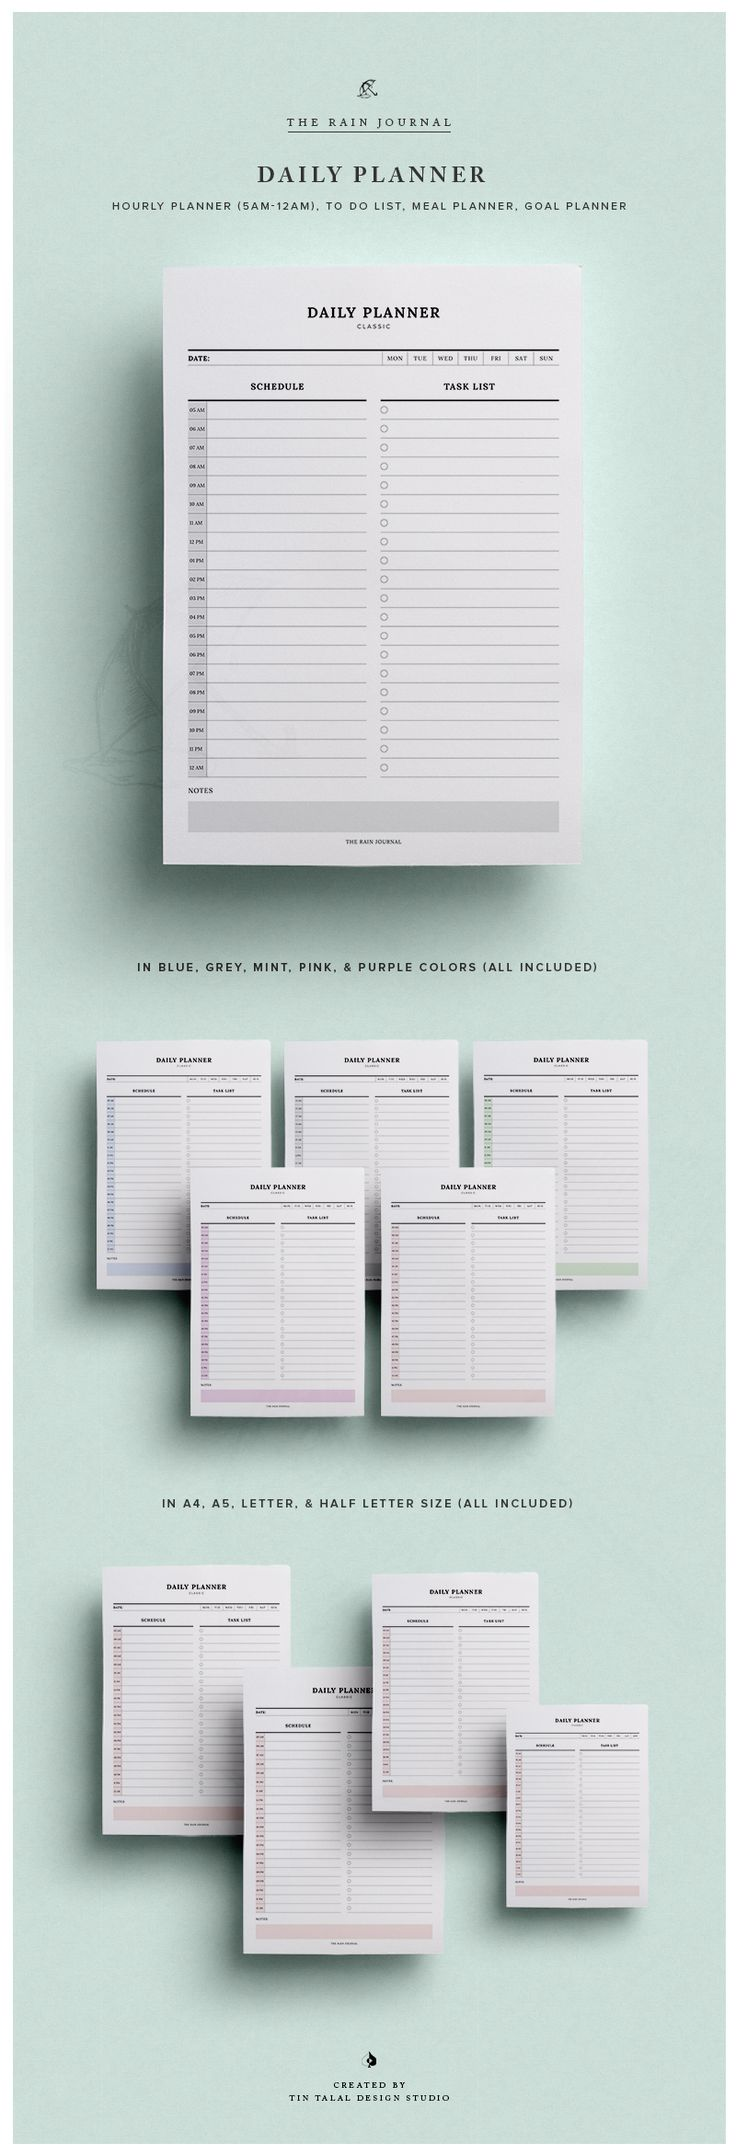 Daily Schedule Printable w/ Hourly Planner & Daily To Do List | Daily Agenda | Daily Planner Printable | Planner Inserts - Classic | Fit for Kikki K Large and A5 Filofax. This To Do List Planners can be inserted in your favorite planner!